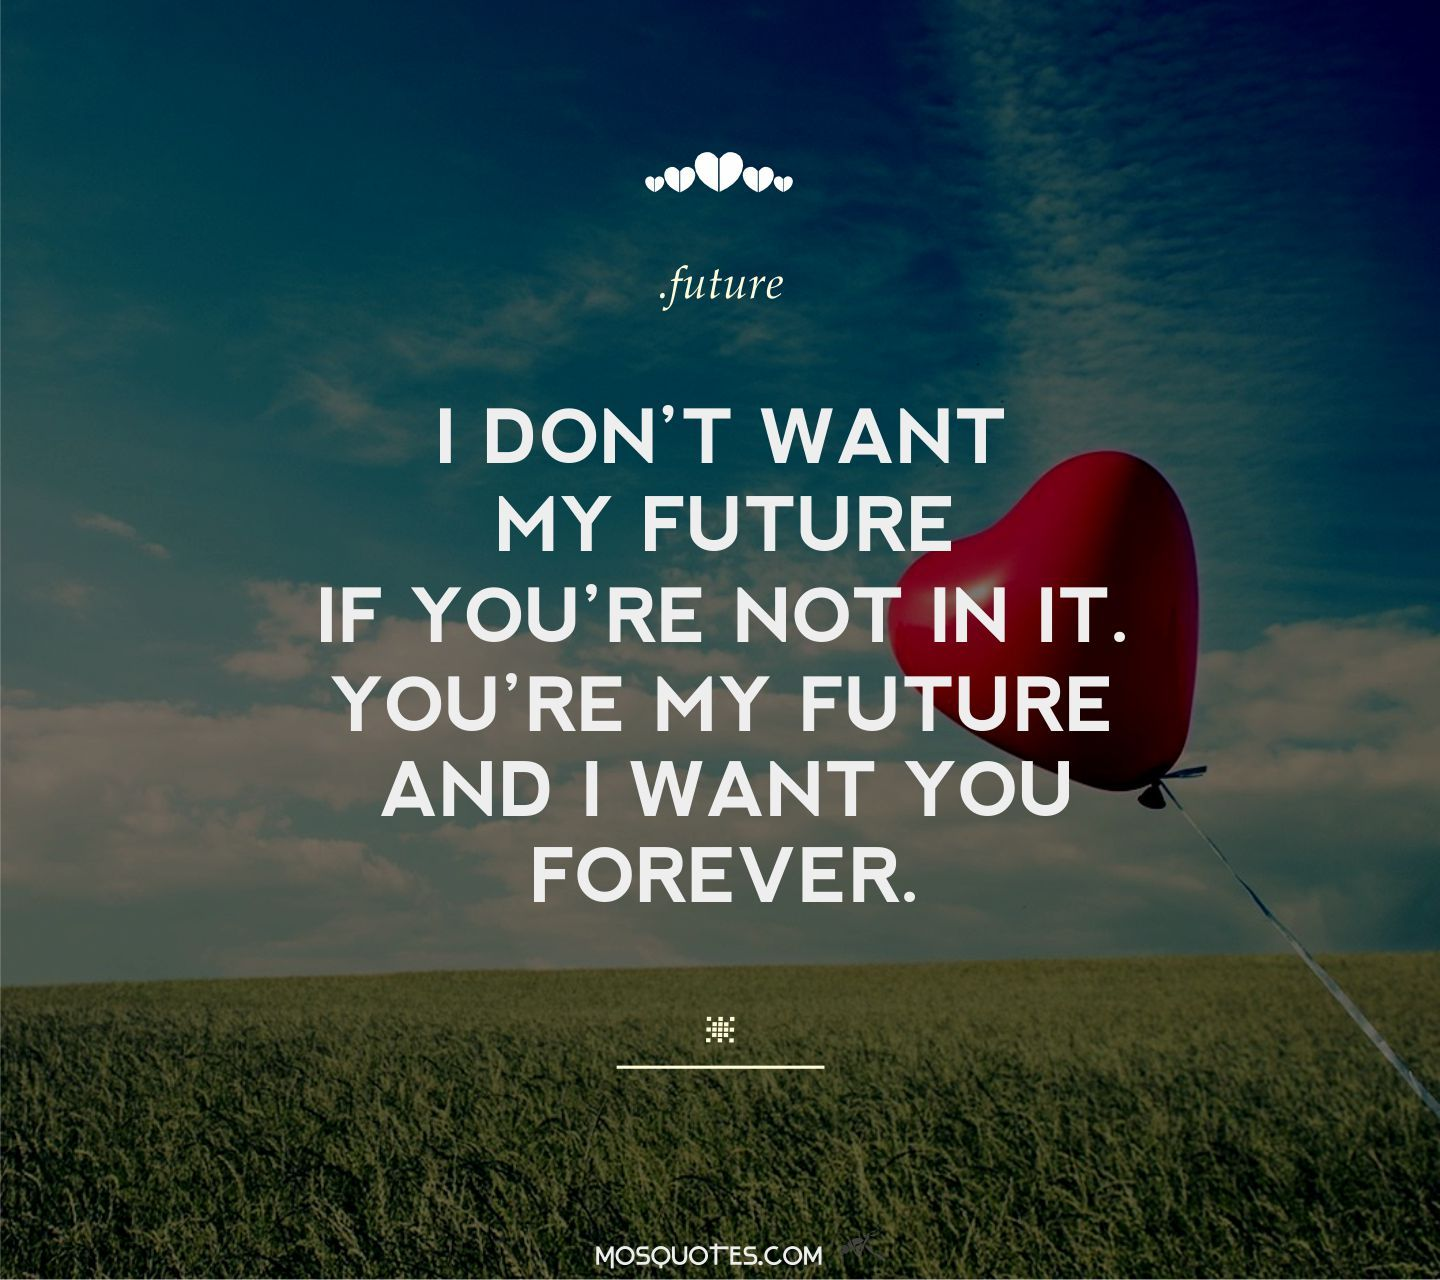 Teenage Love Quotes For Her Cute Teen Love Quotes I Don't Want My Future If You're Not In It